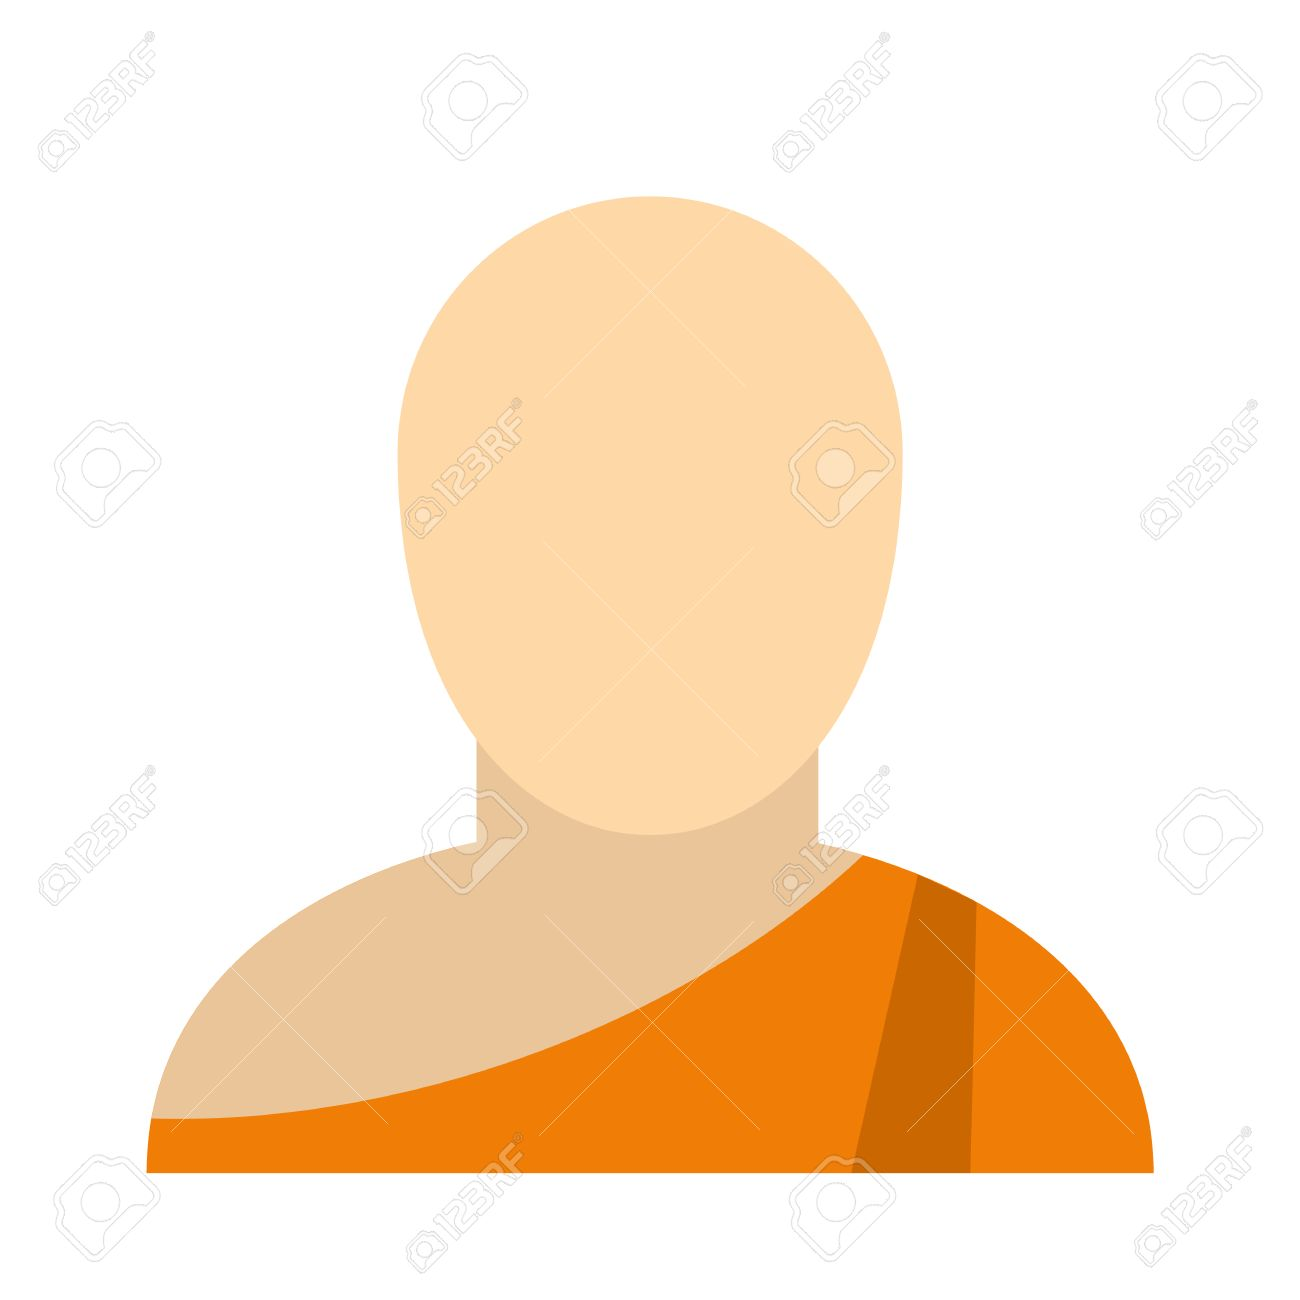 Buddhist Monk Flat Icon Isolated On White Background Royalty Free